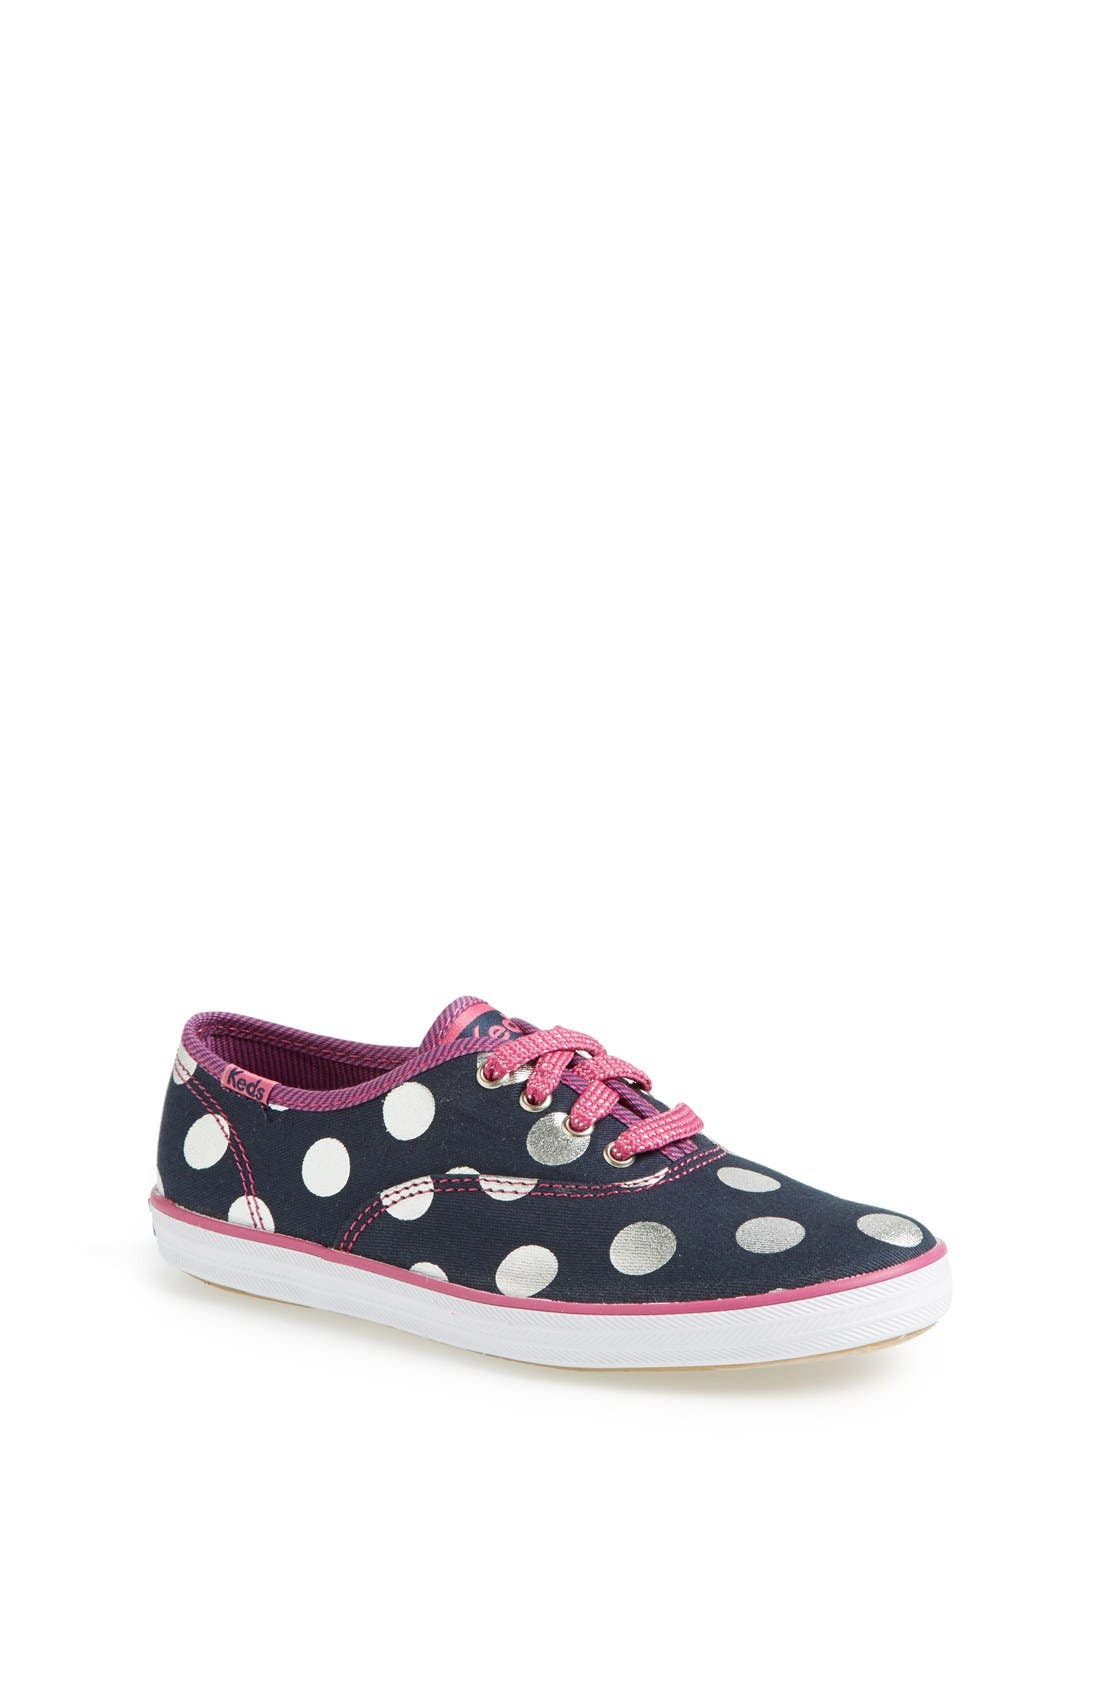 Alternate Image 1 Selected - Keds® 'Champion' Polka Dot Sneaker (Walker, Toddler, Little Kid & Big Kid)